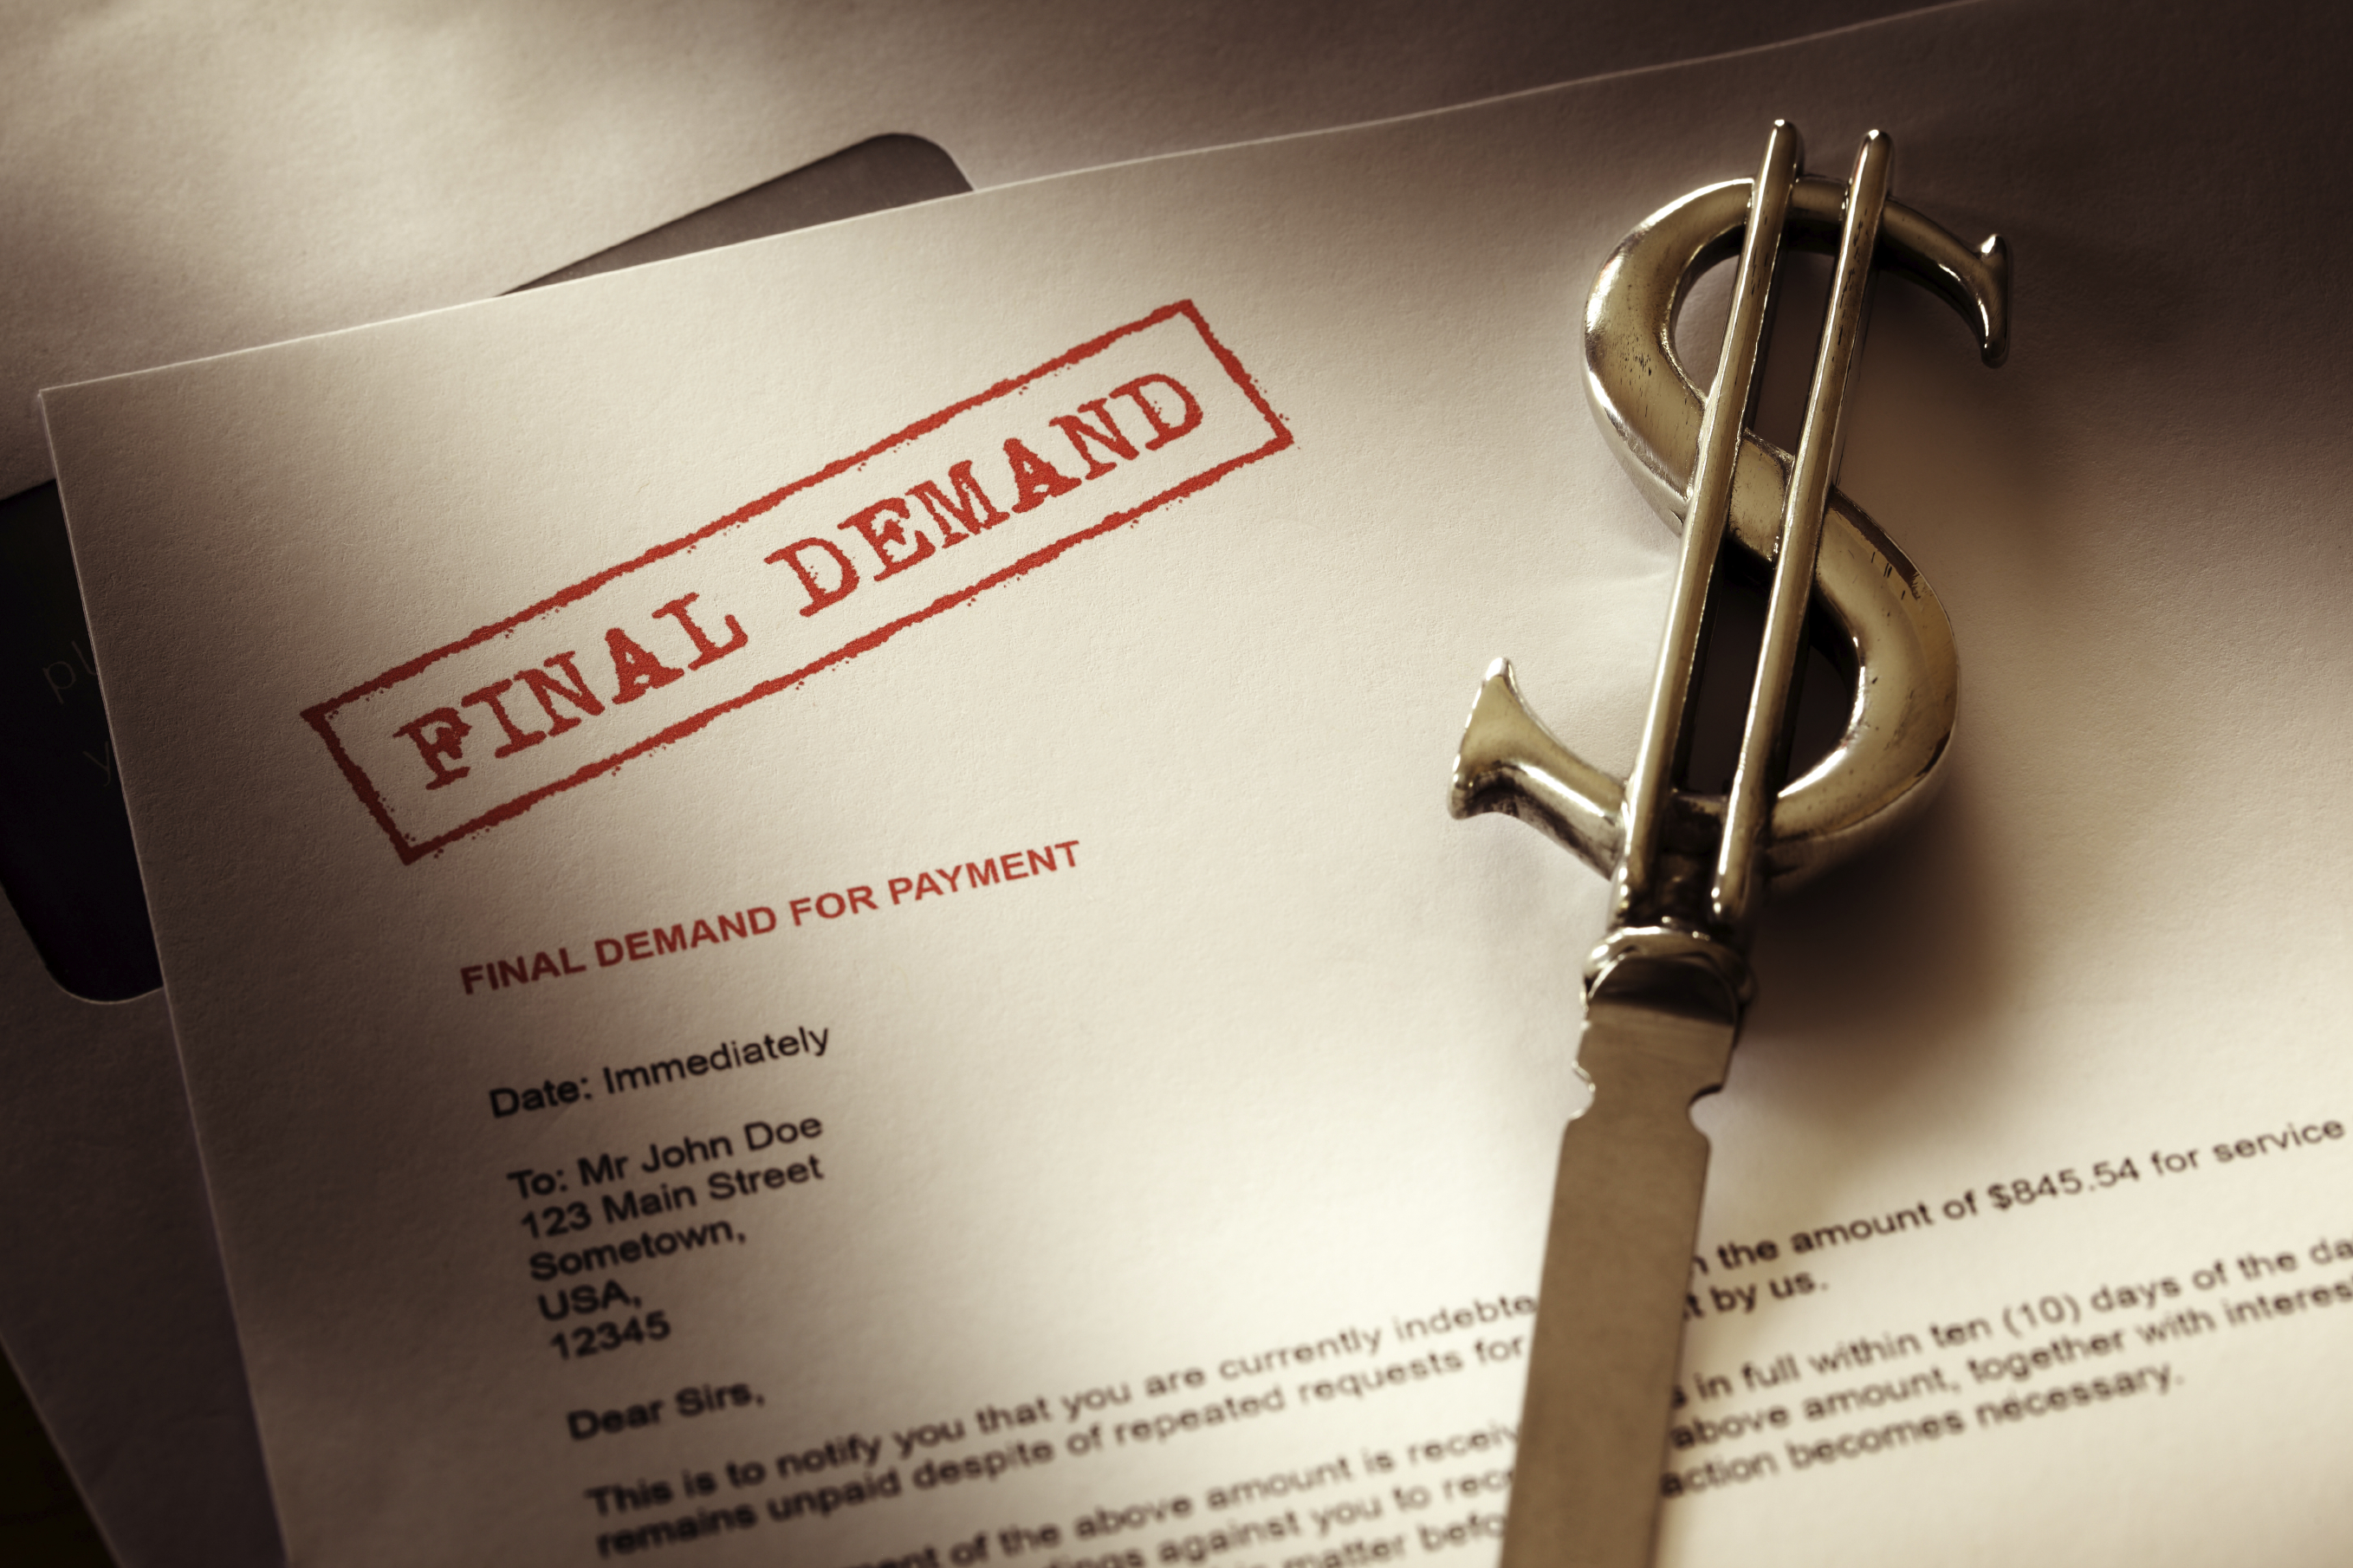 Debt Collection Agency >> 7 things debt collectors aren't allowed to do - CBS News